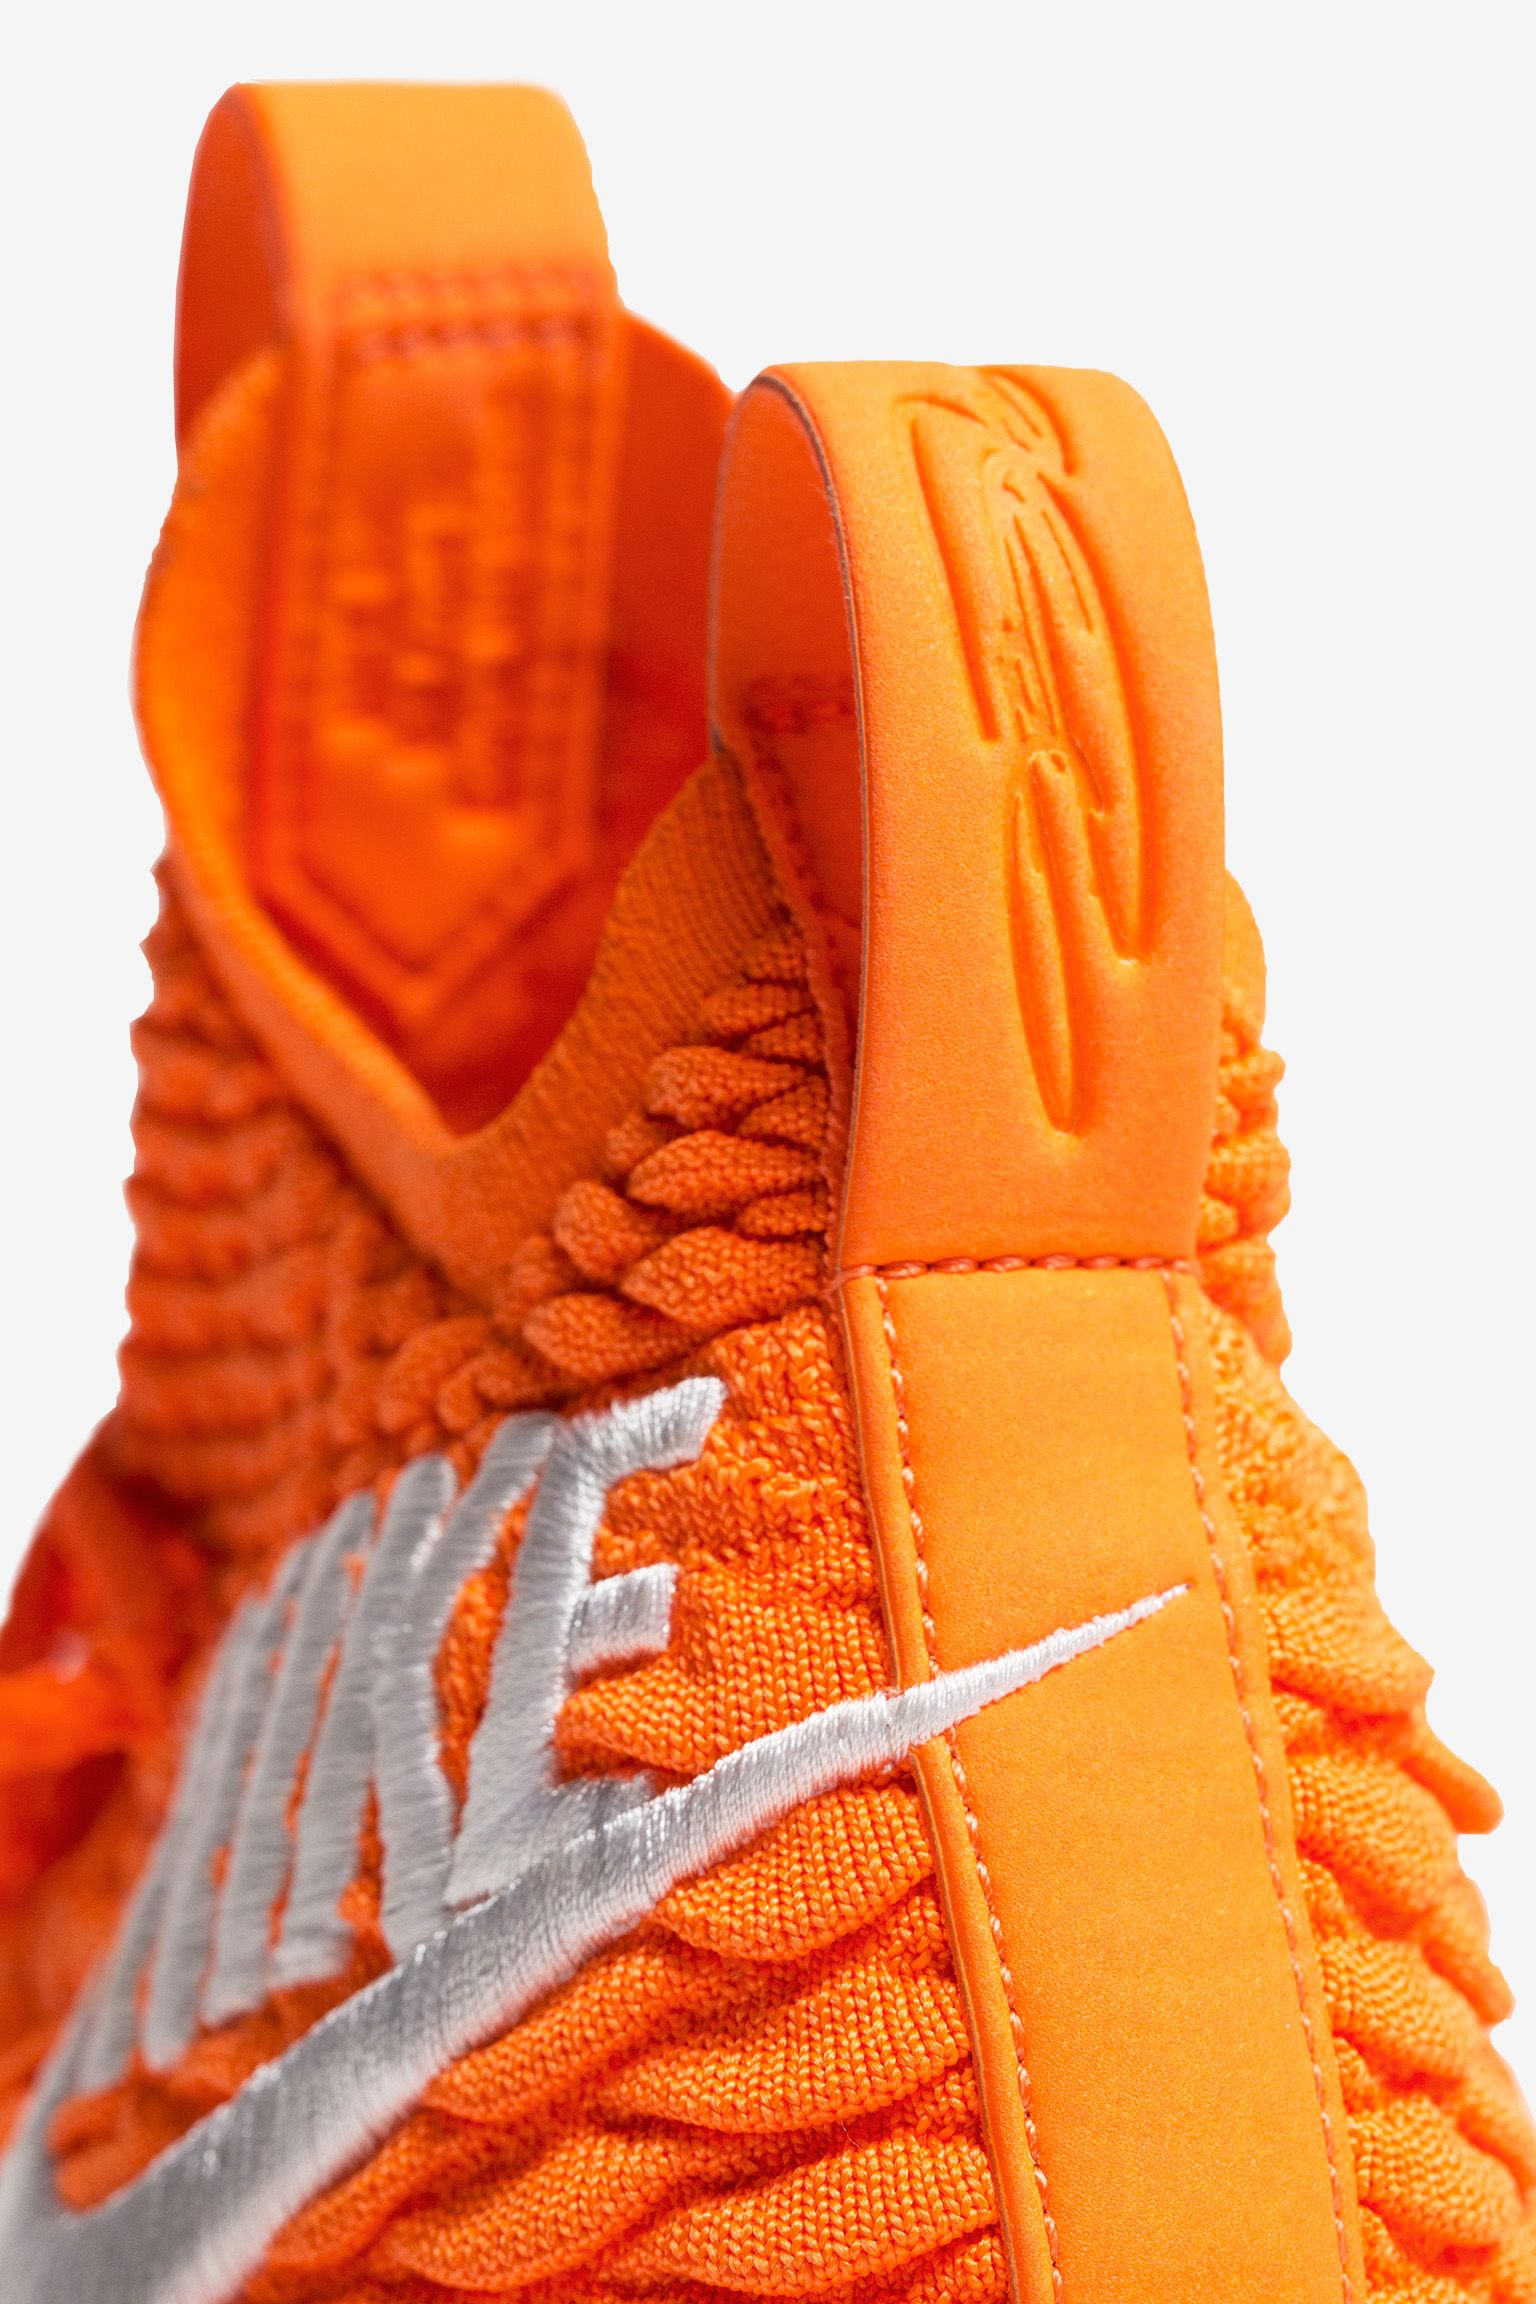 Nike Lebron 15 'Orange Box' Release Date